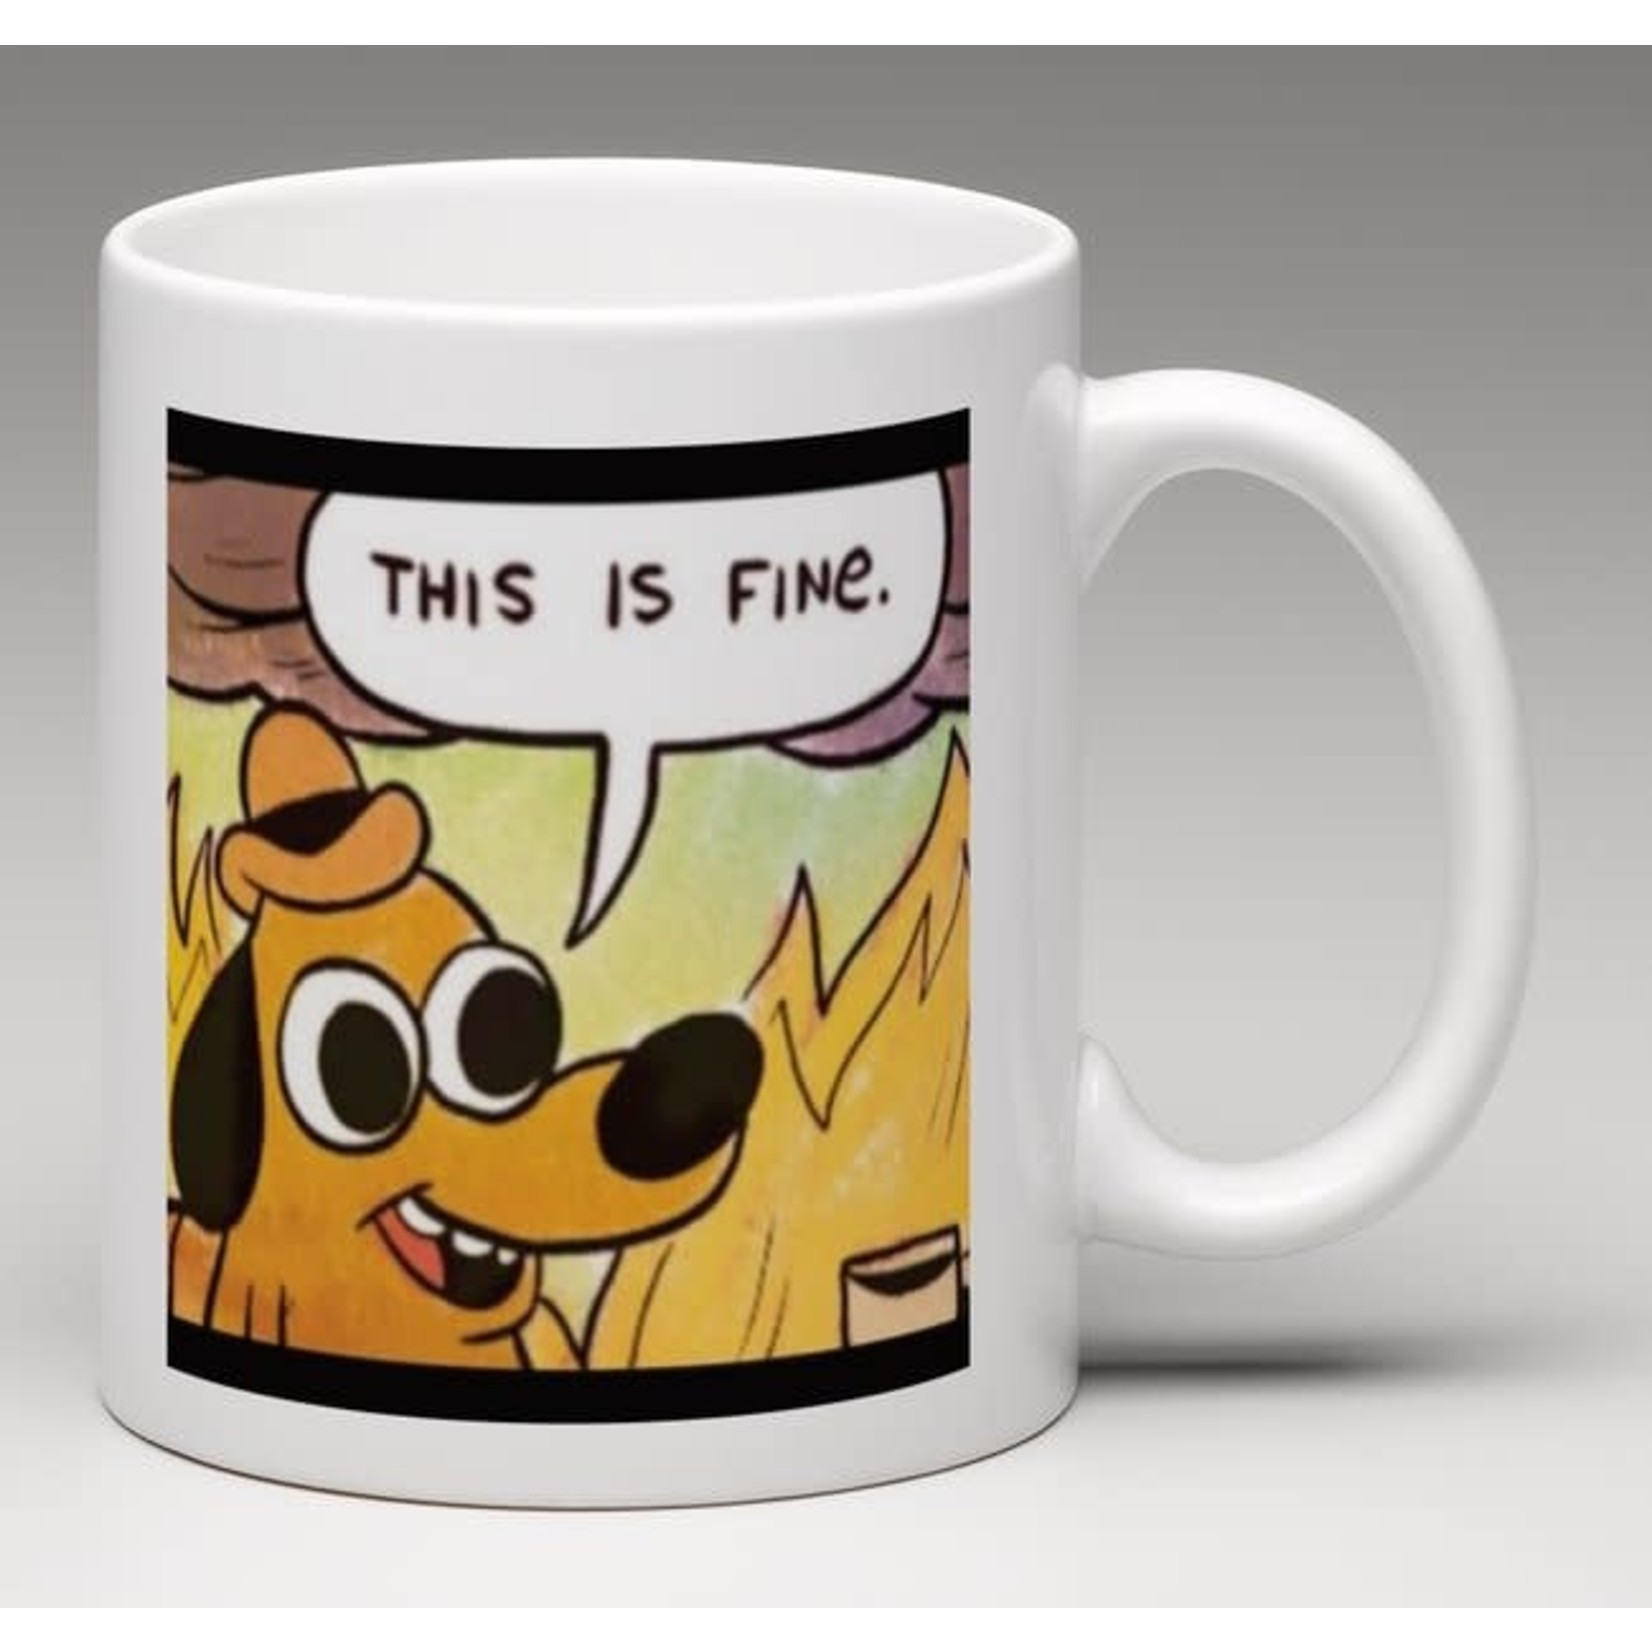 Bad Annie's Mug - Scream inside your heart - This Is Fine